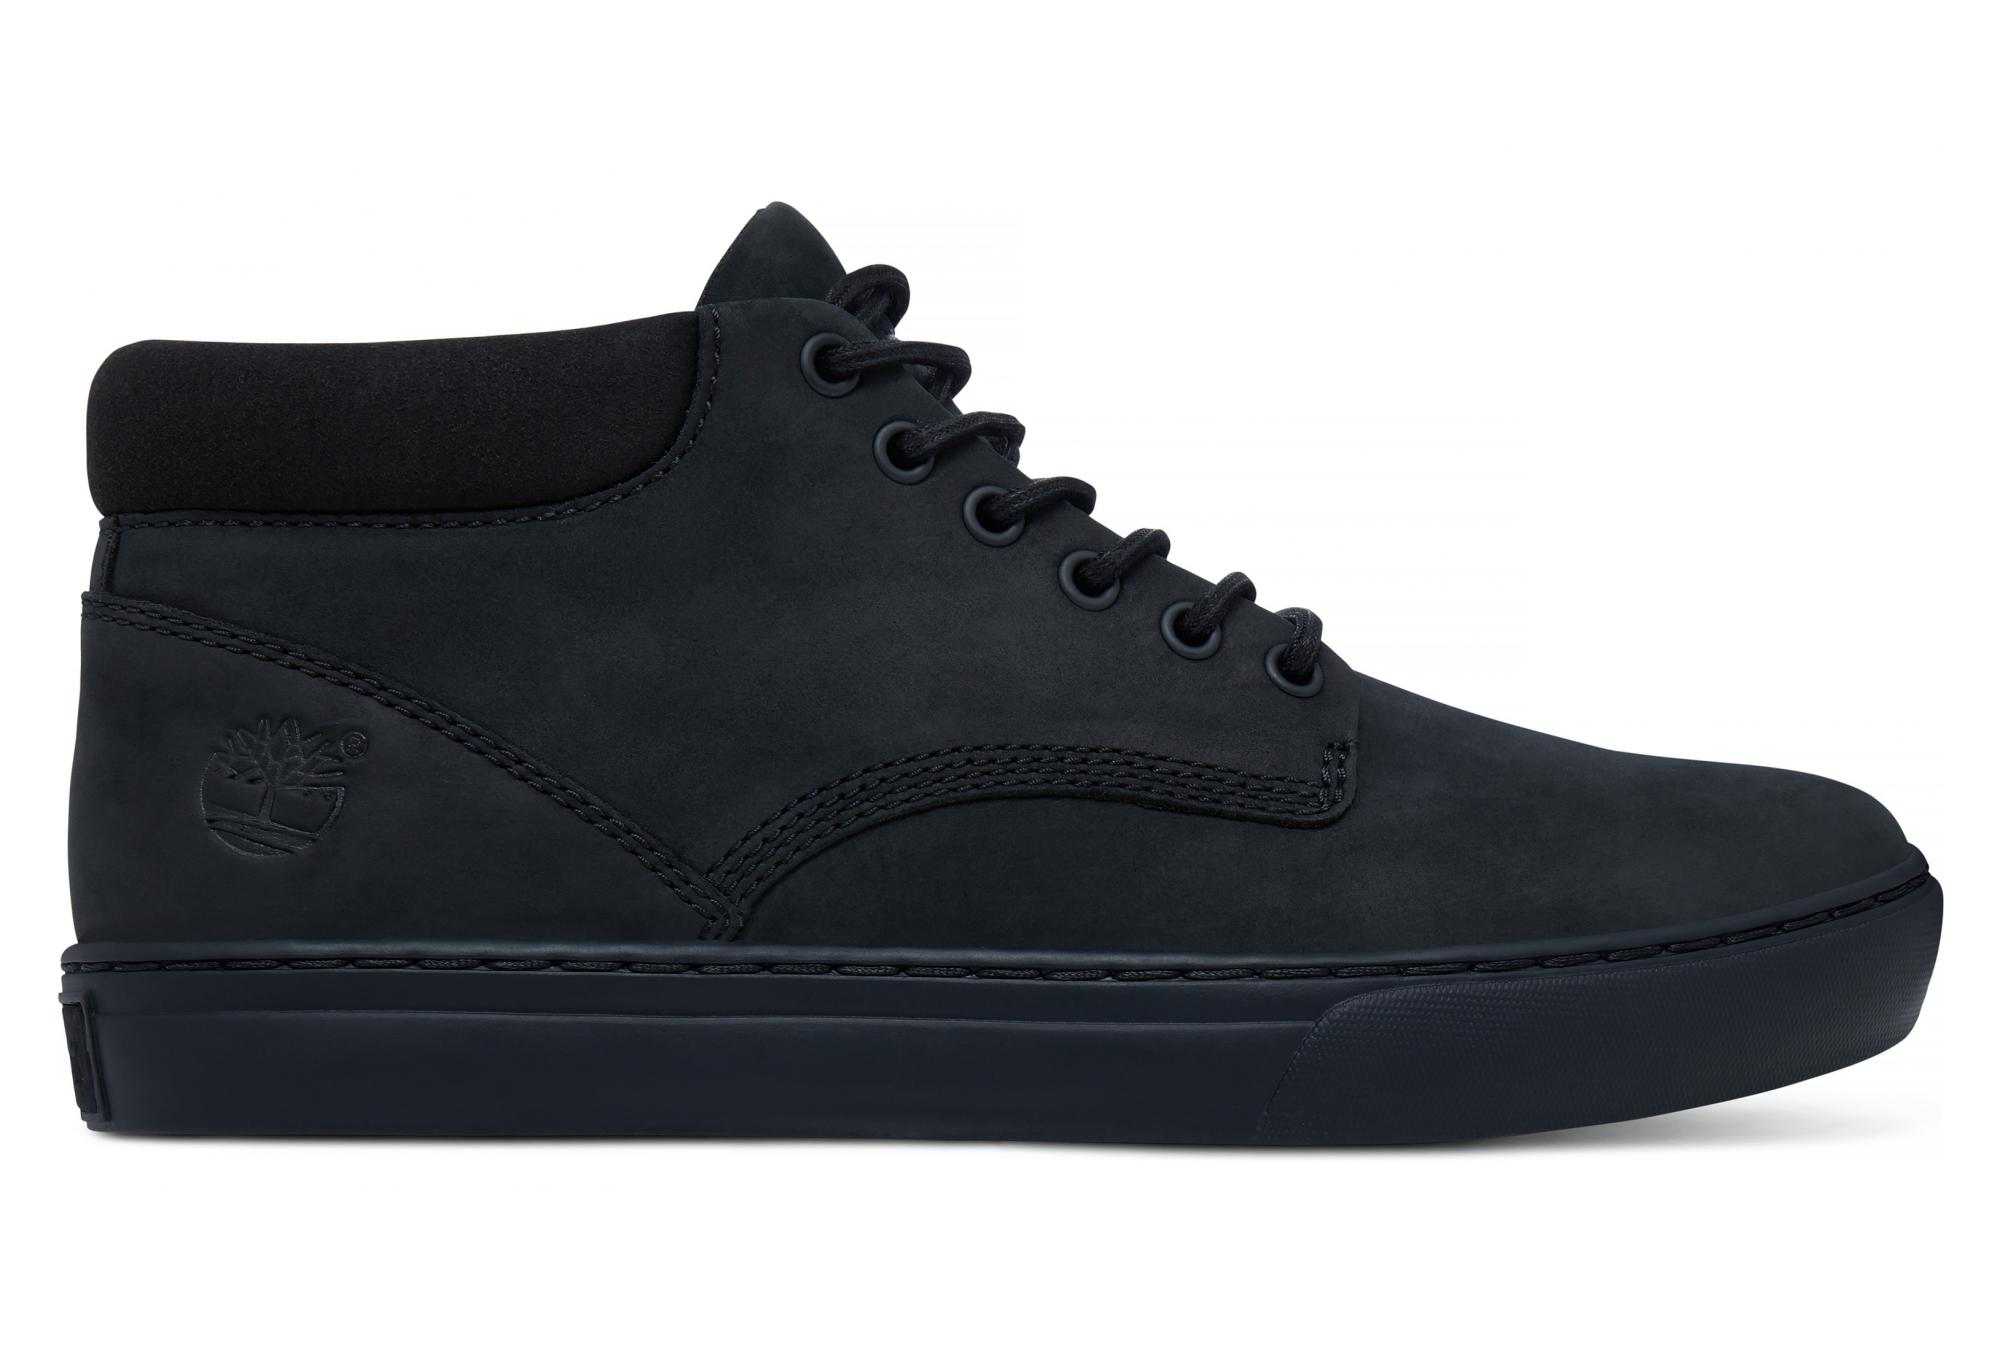 Timberland Shoes ADV2.0 Chukka Black